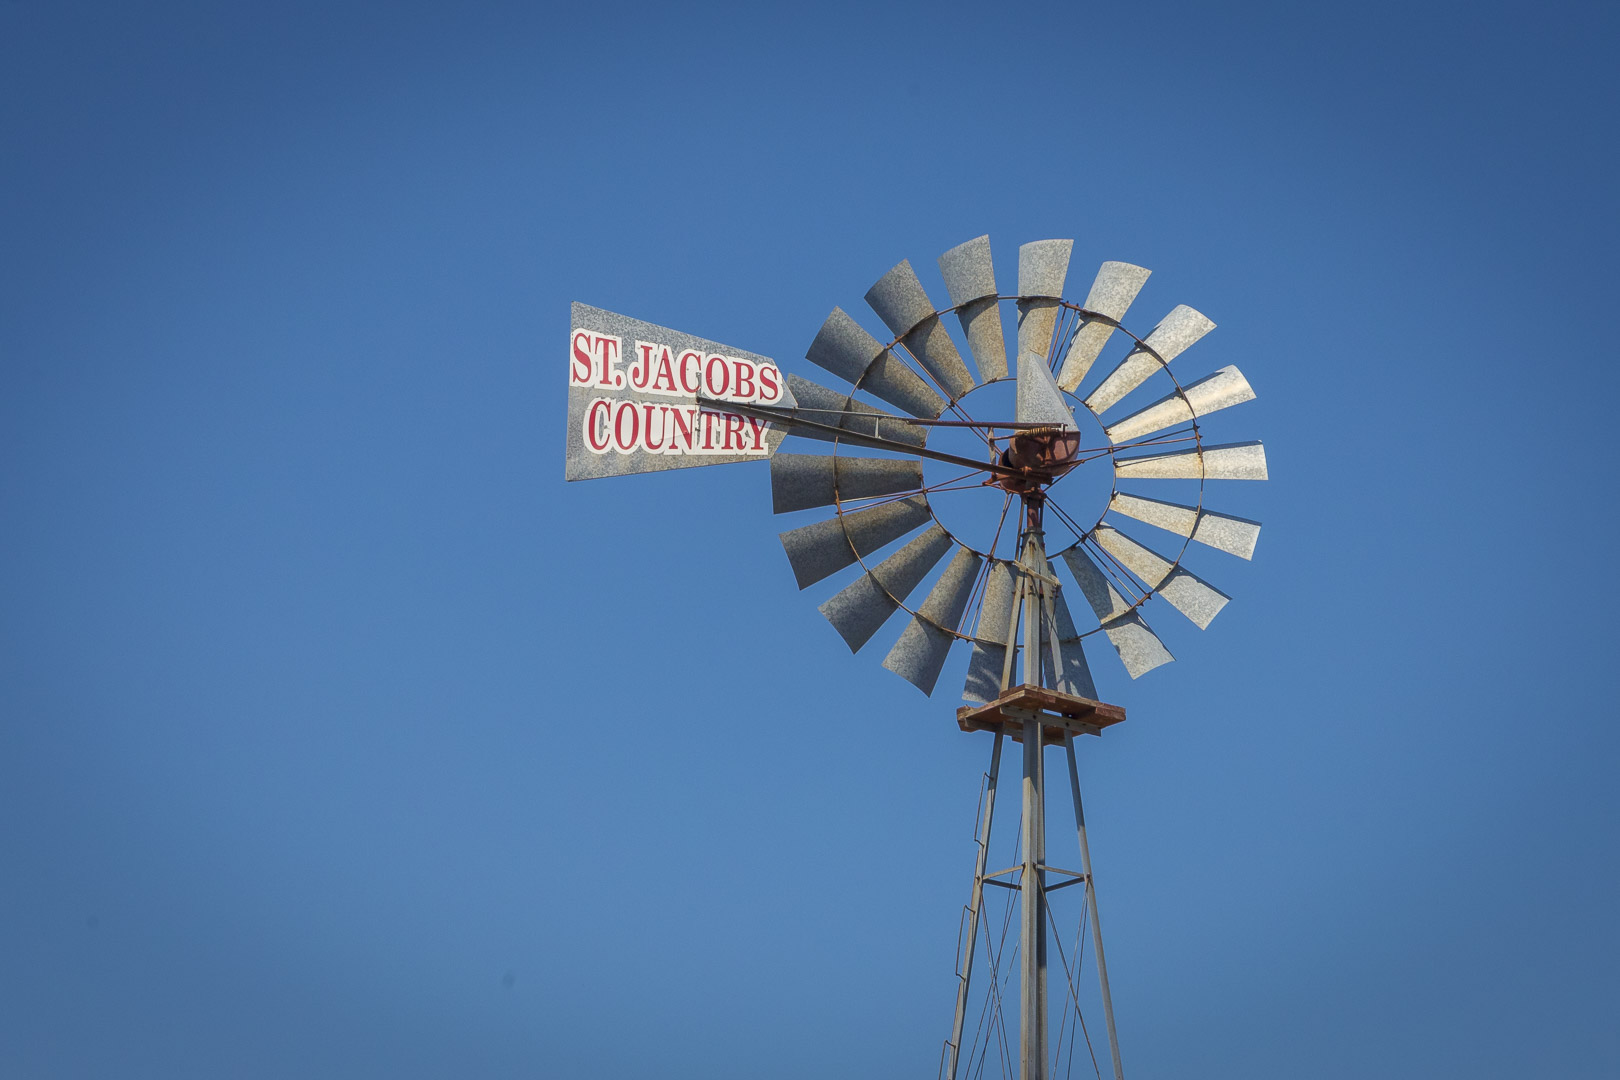 St Jacobs Country Windmill